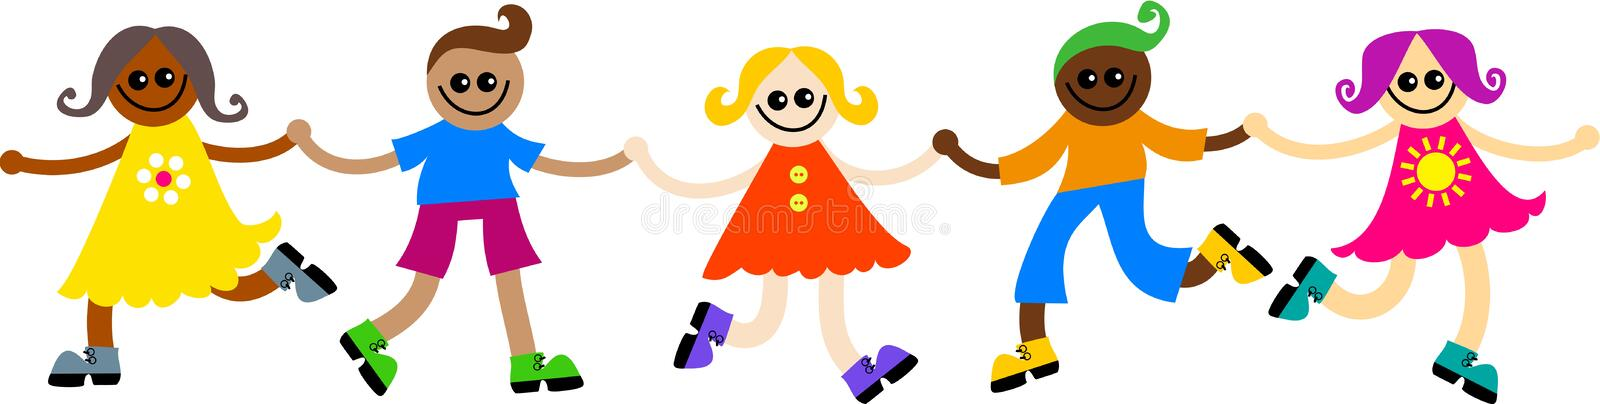 Diverse kids. Group of happy and diverse children holding hands vector illustration